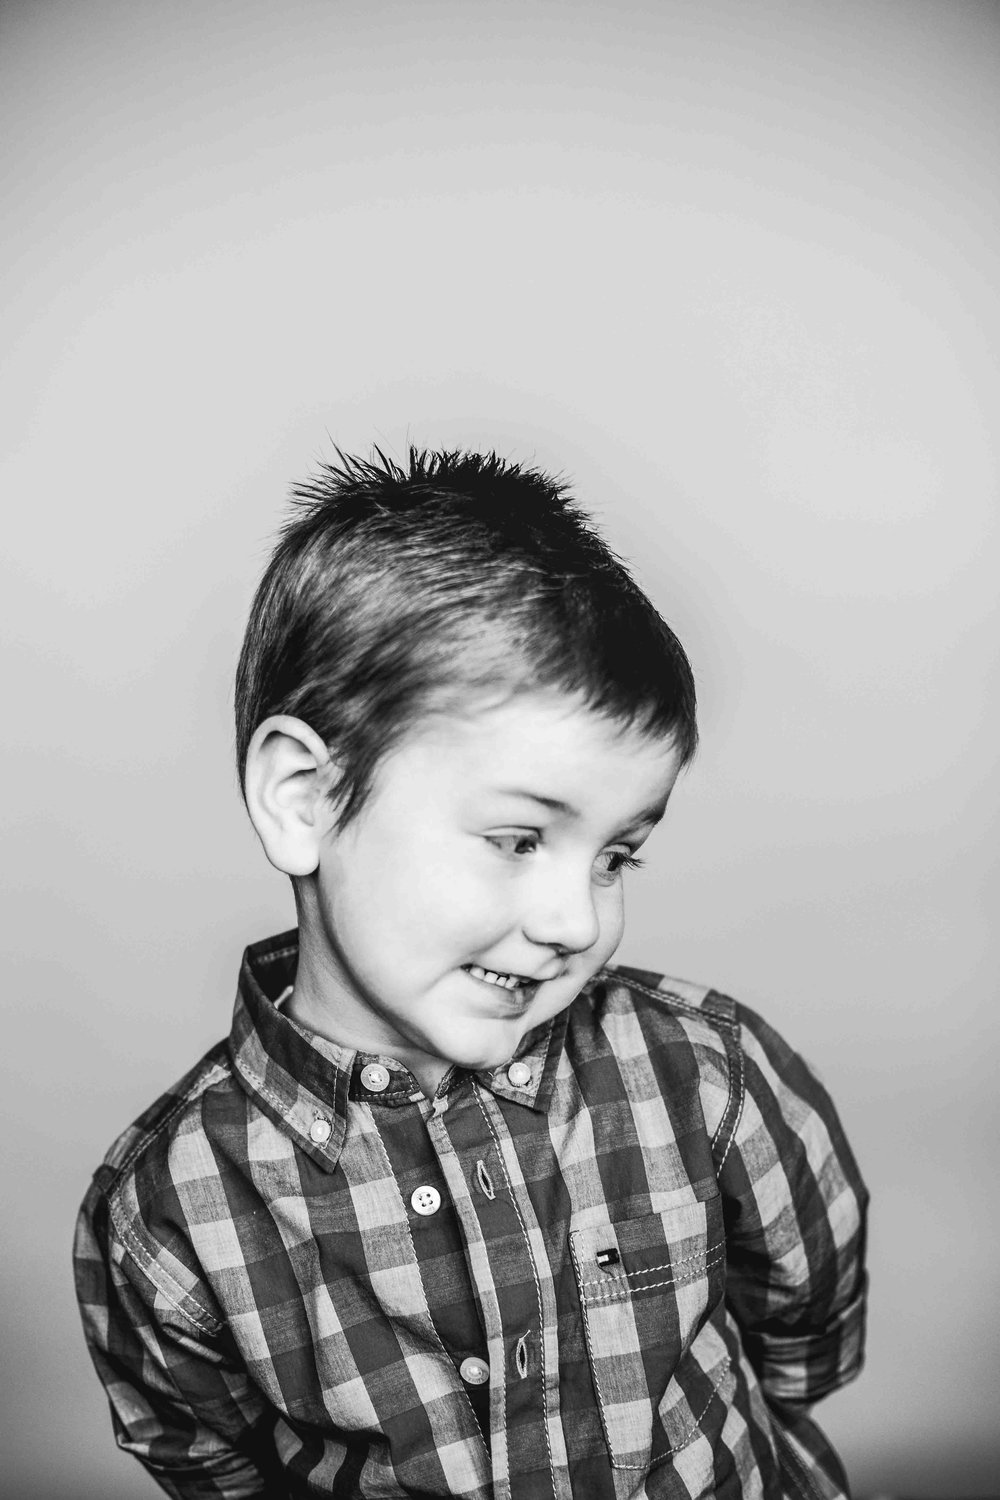 03Jase Dean3yr preksnowflake-pittsburgh-boutique-school-photography.jpg